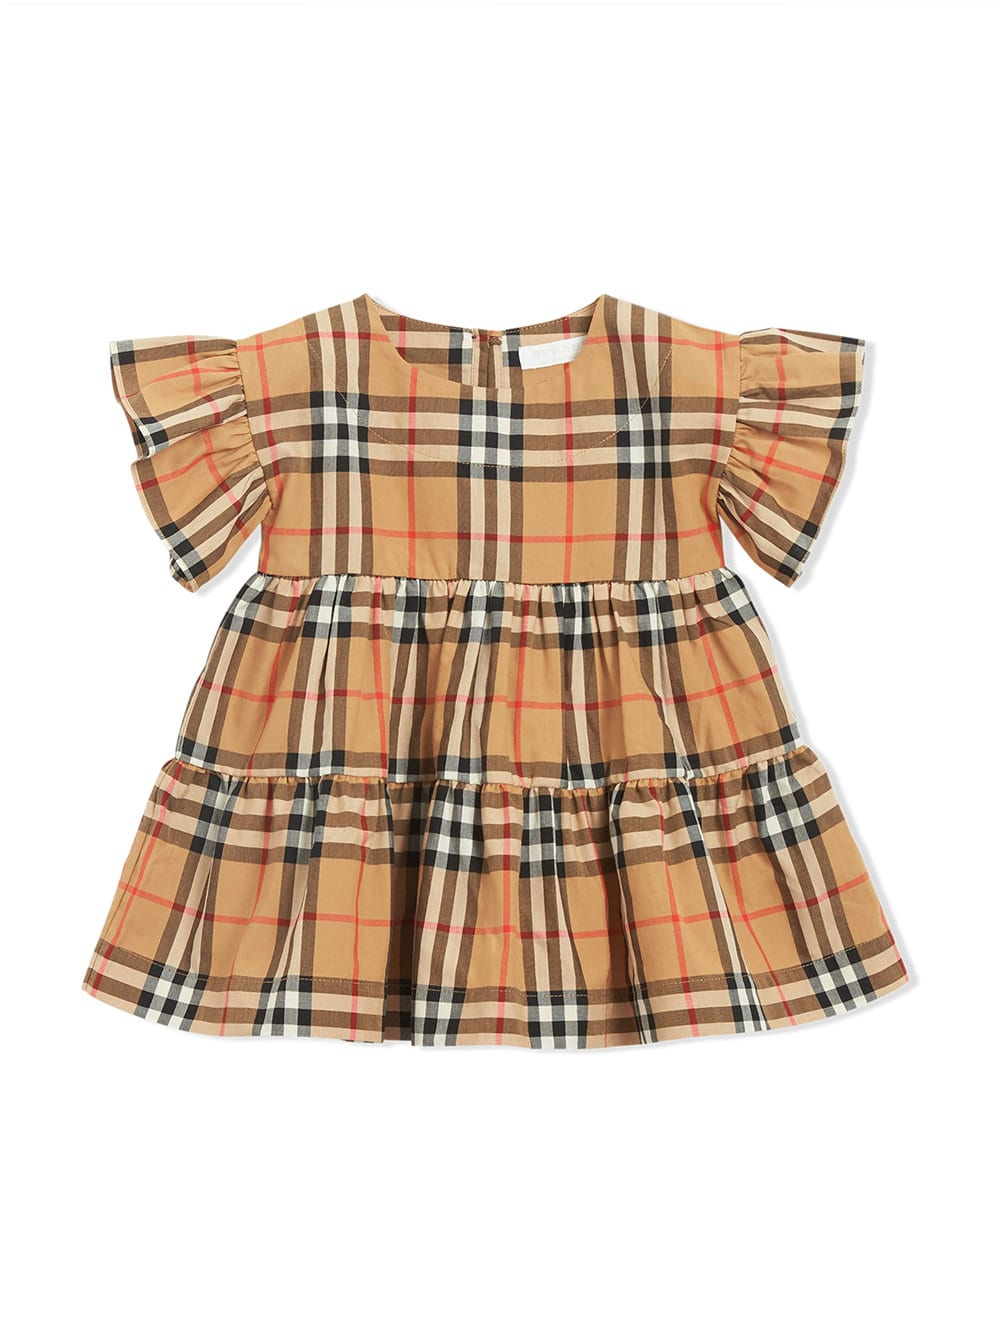 8d5e65449dc Burberry Kids Ruffle Detail Vintage Check Dress with Bloomers ...